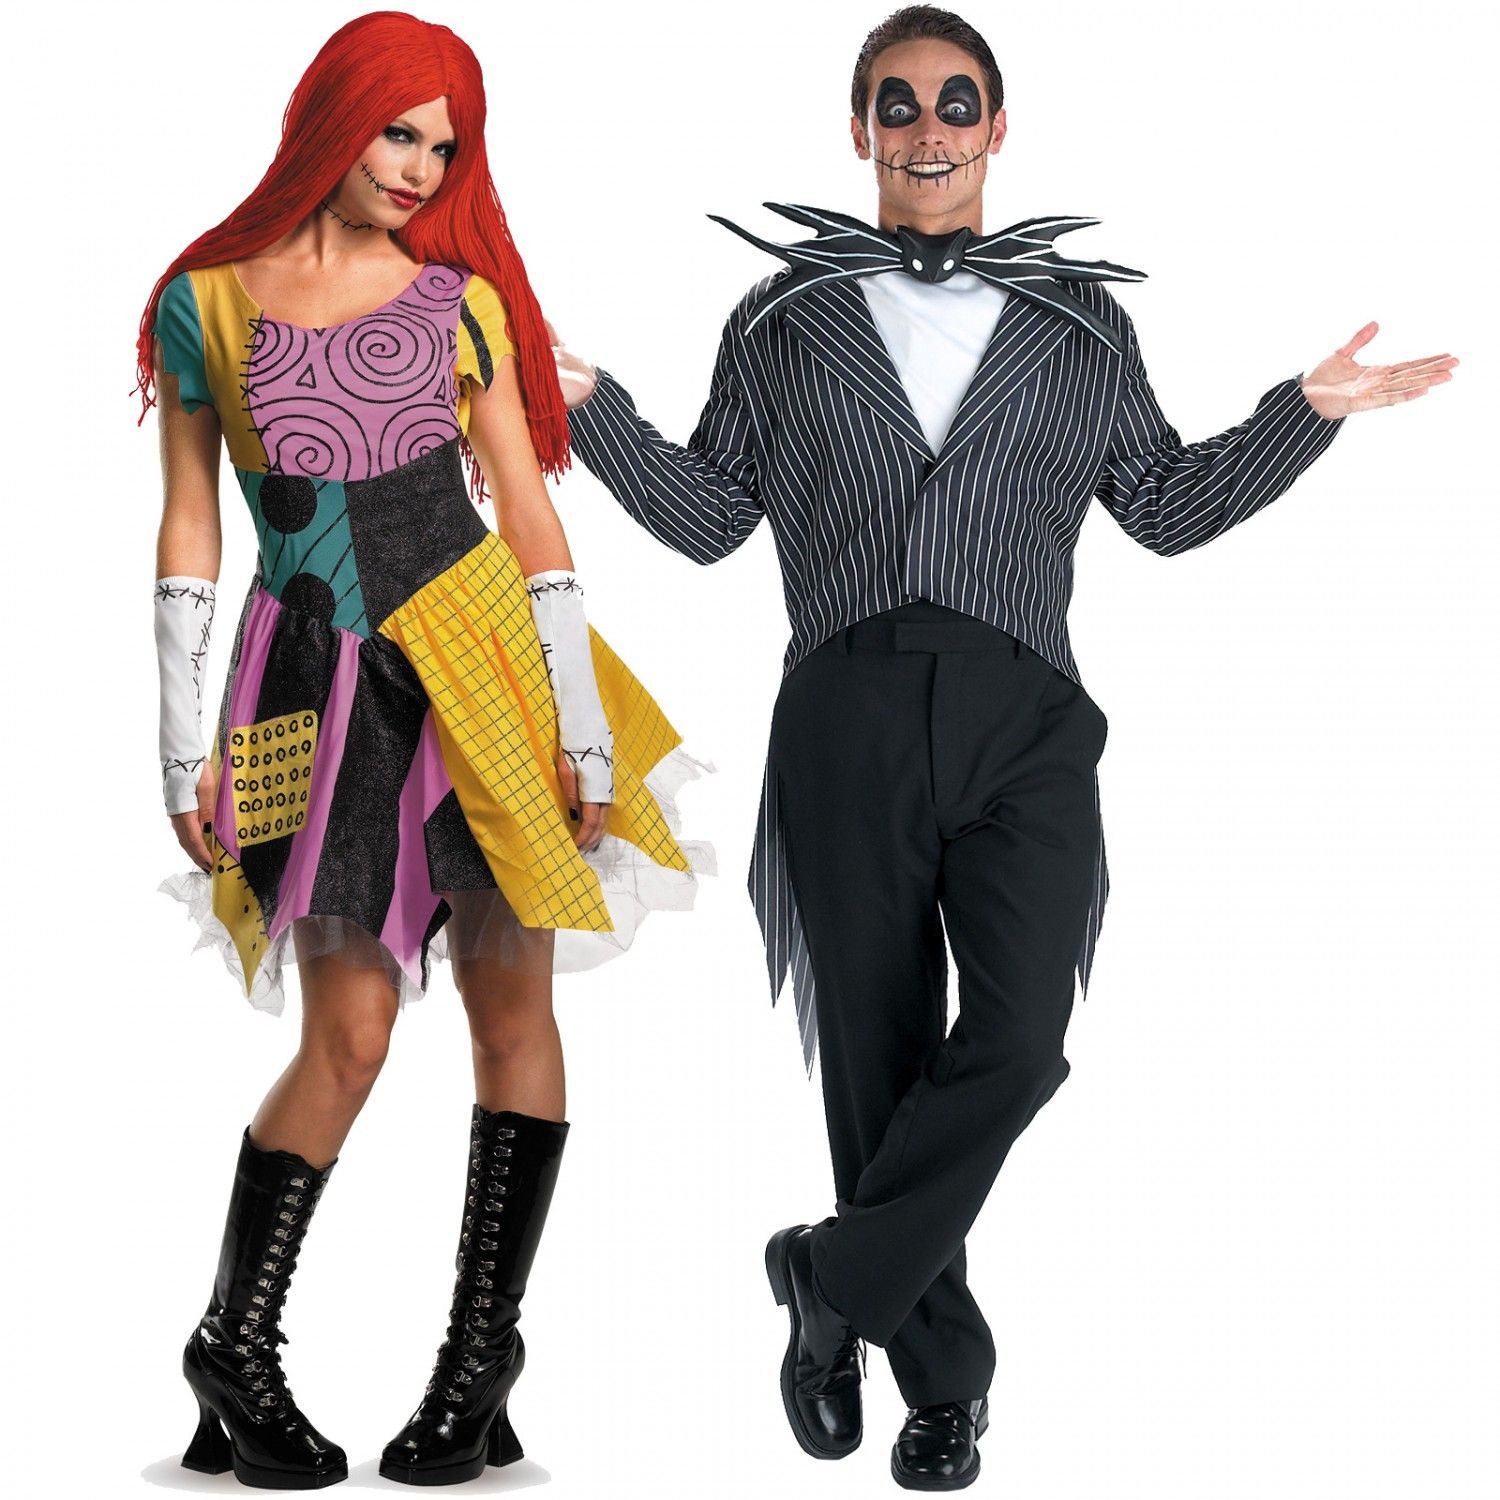 explore teen costumes couple costumes and more - Teen Couples Halloween Costumes